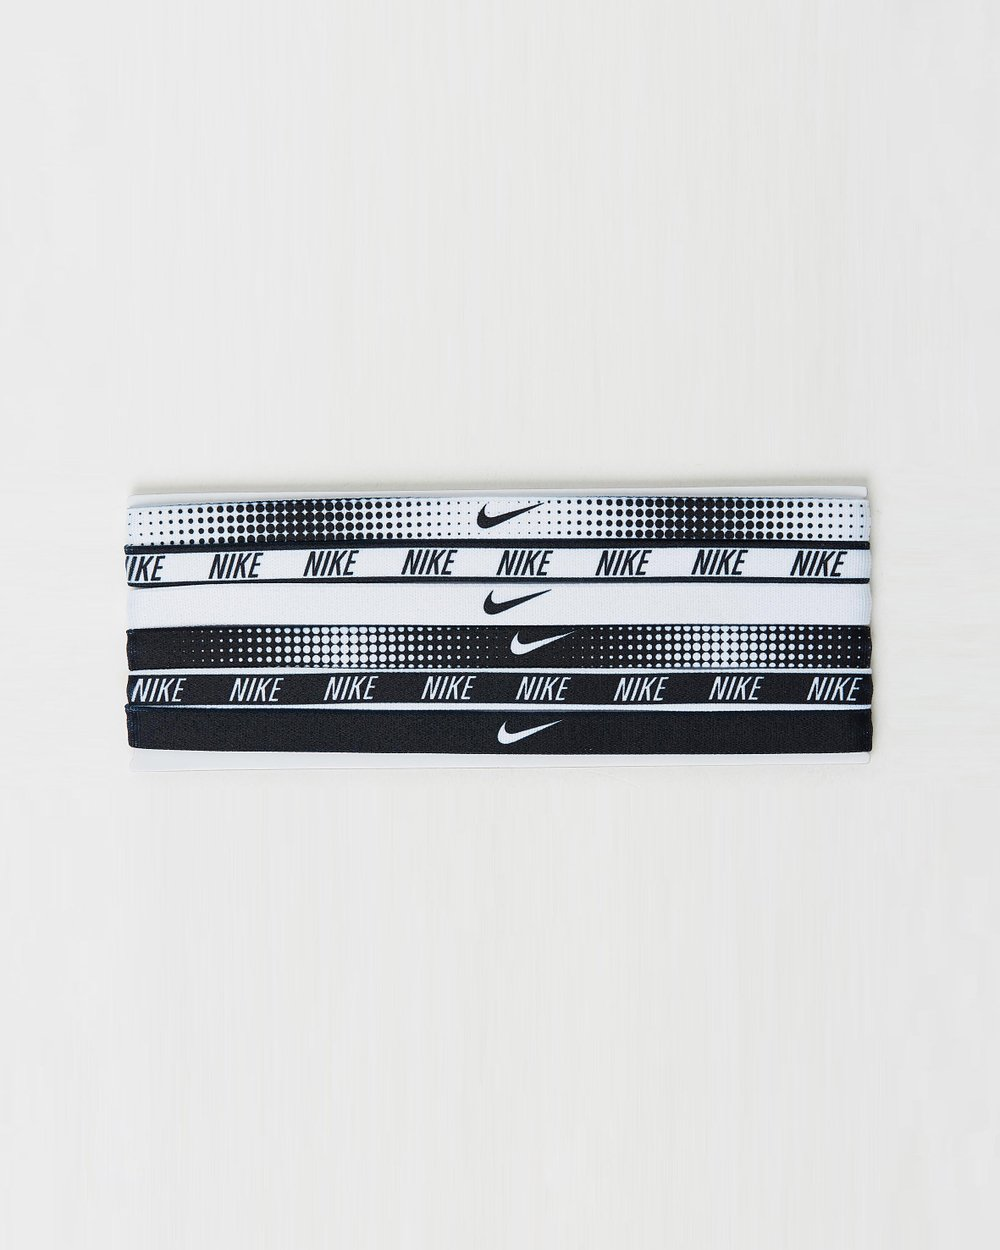 6-Pack Printed Headbands by Nike Online  b74ab467cac